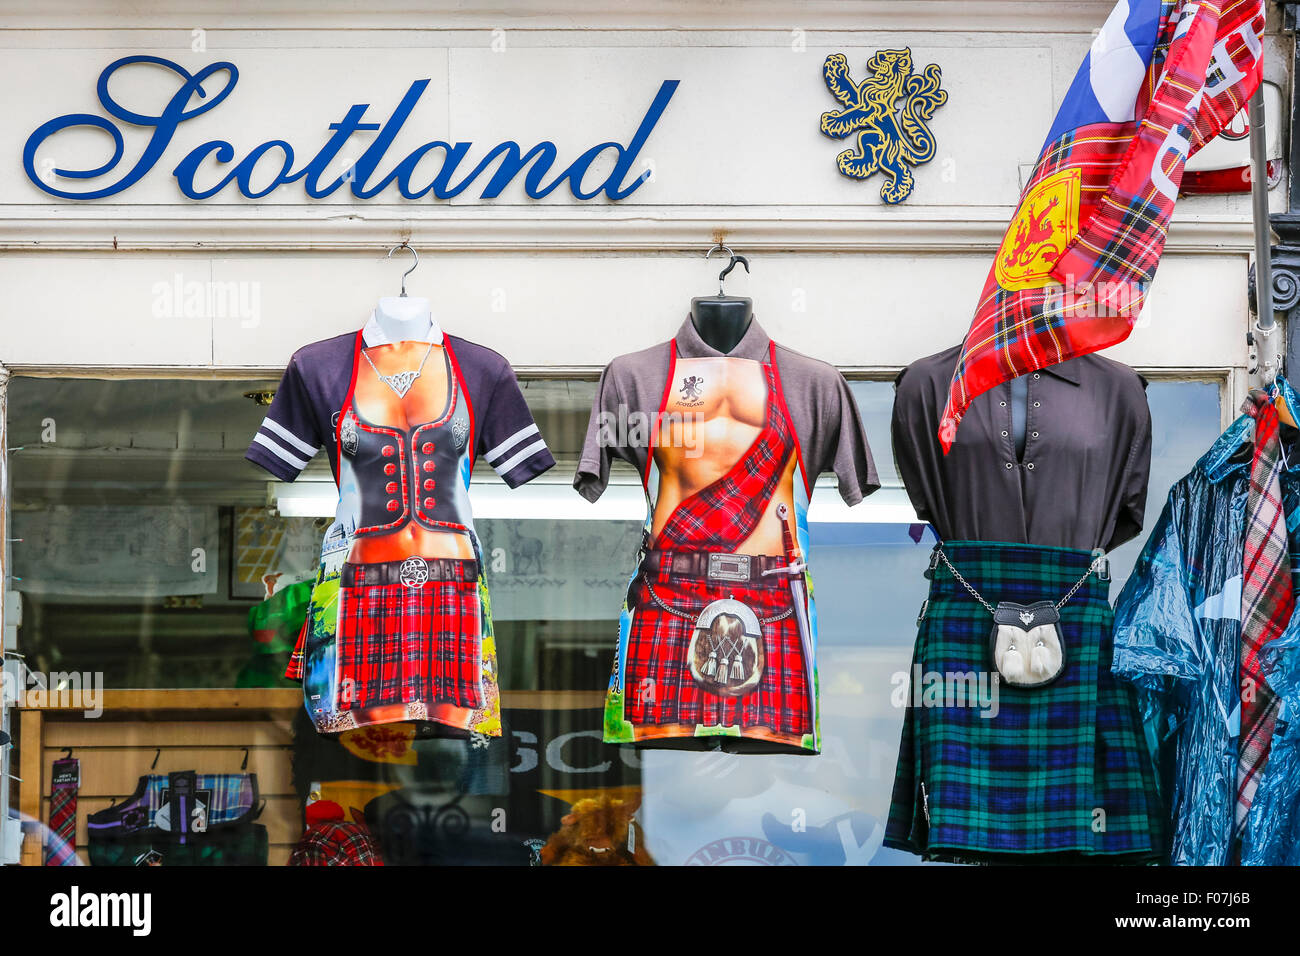 Outside displays of tartan styled cooking aprons, kilts and Scottish flags, Edinburgh, Scotland, UK - Stock Image